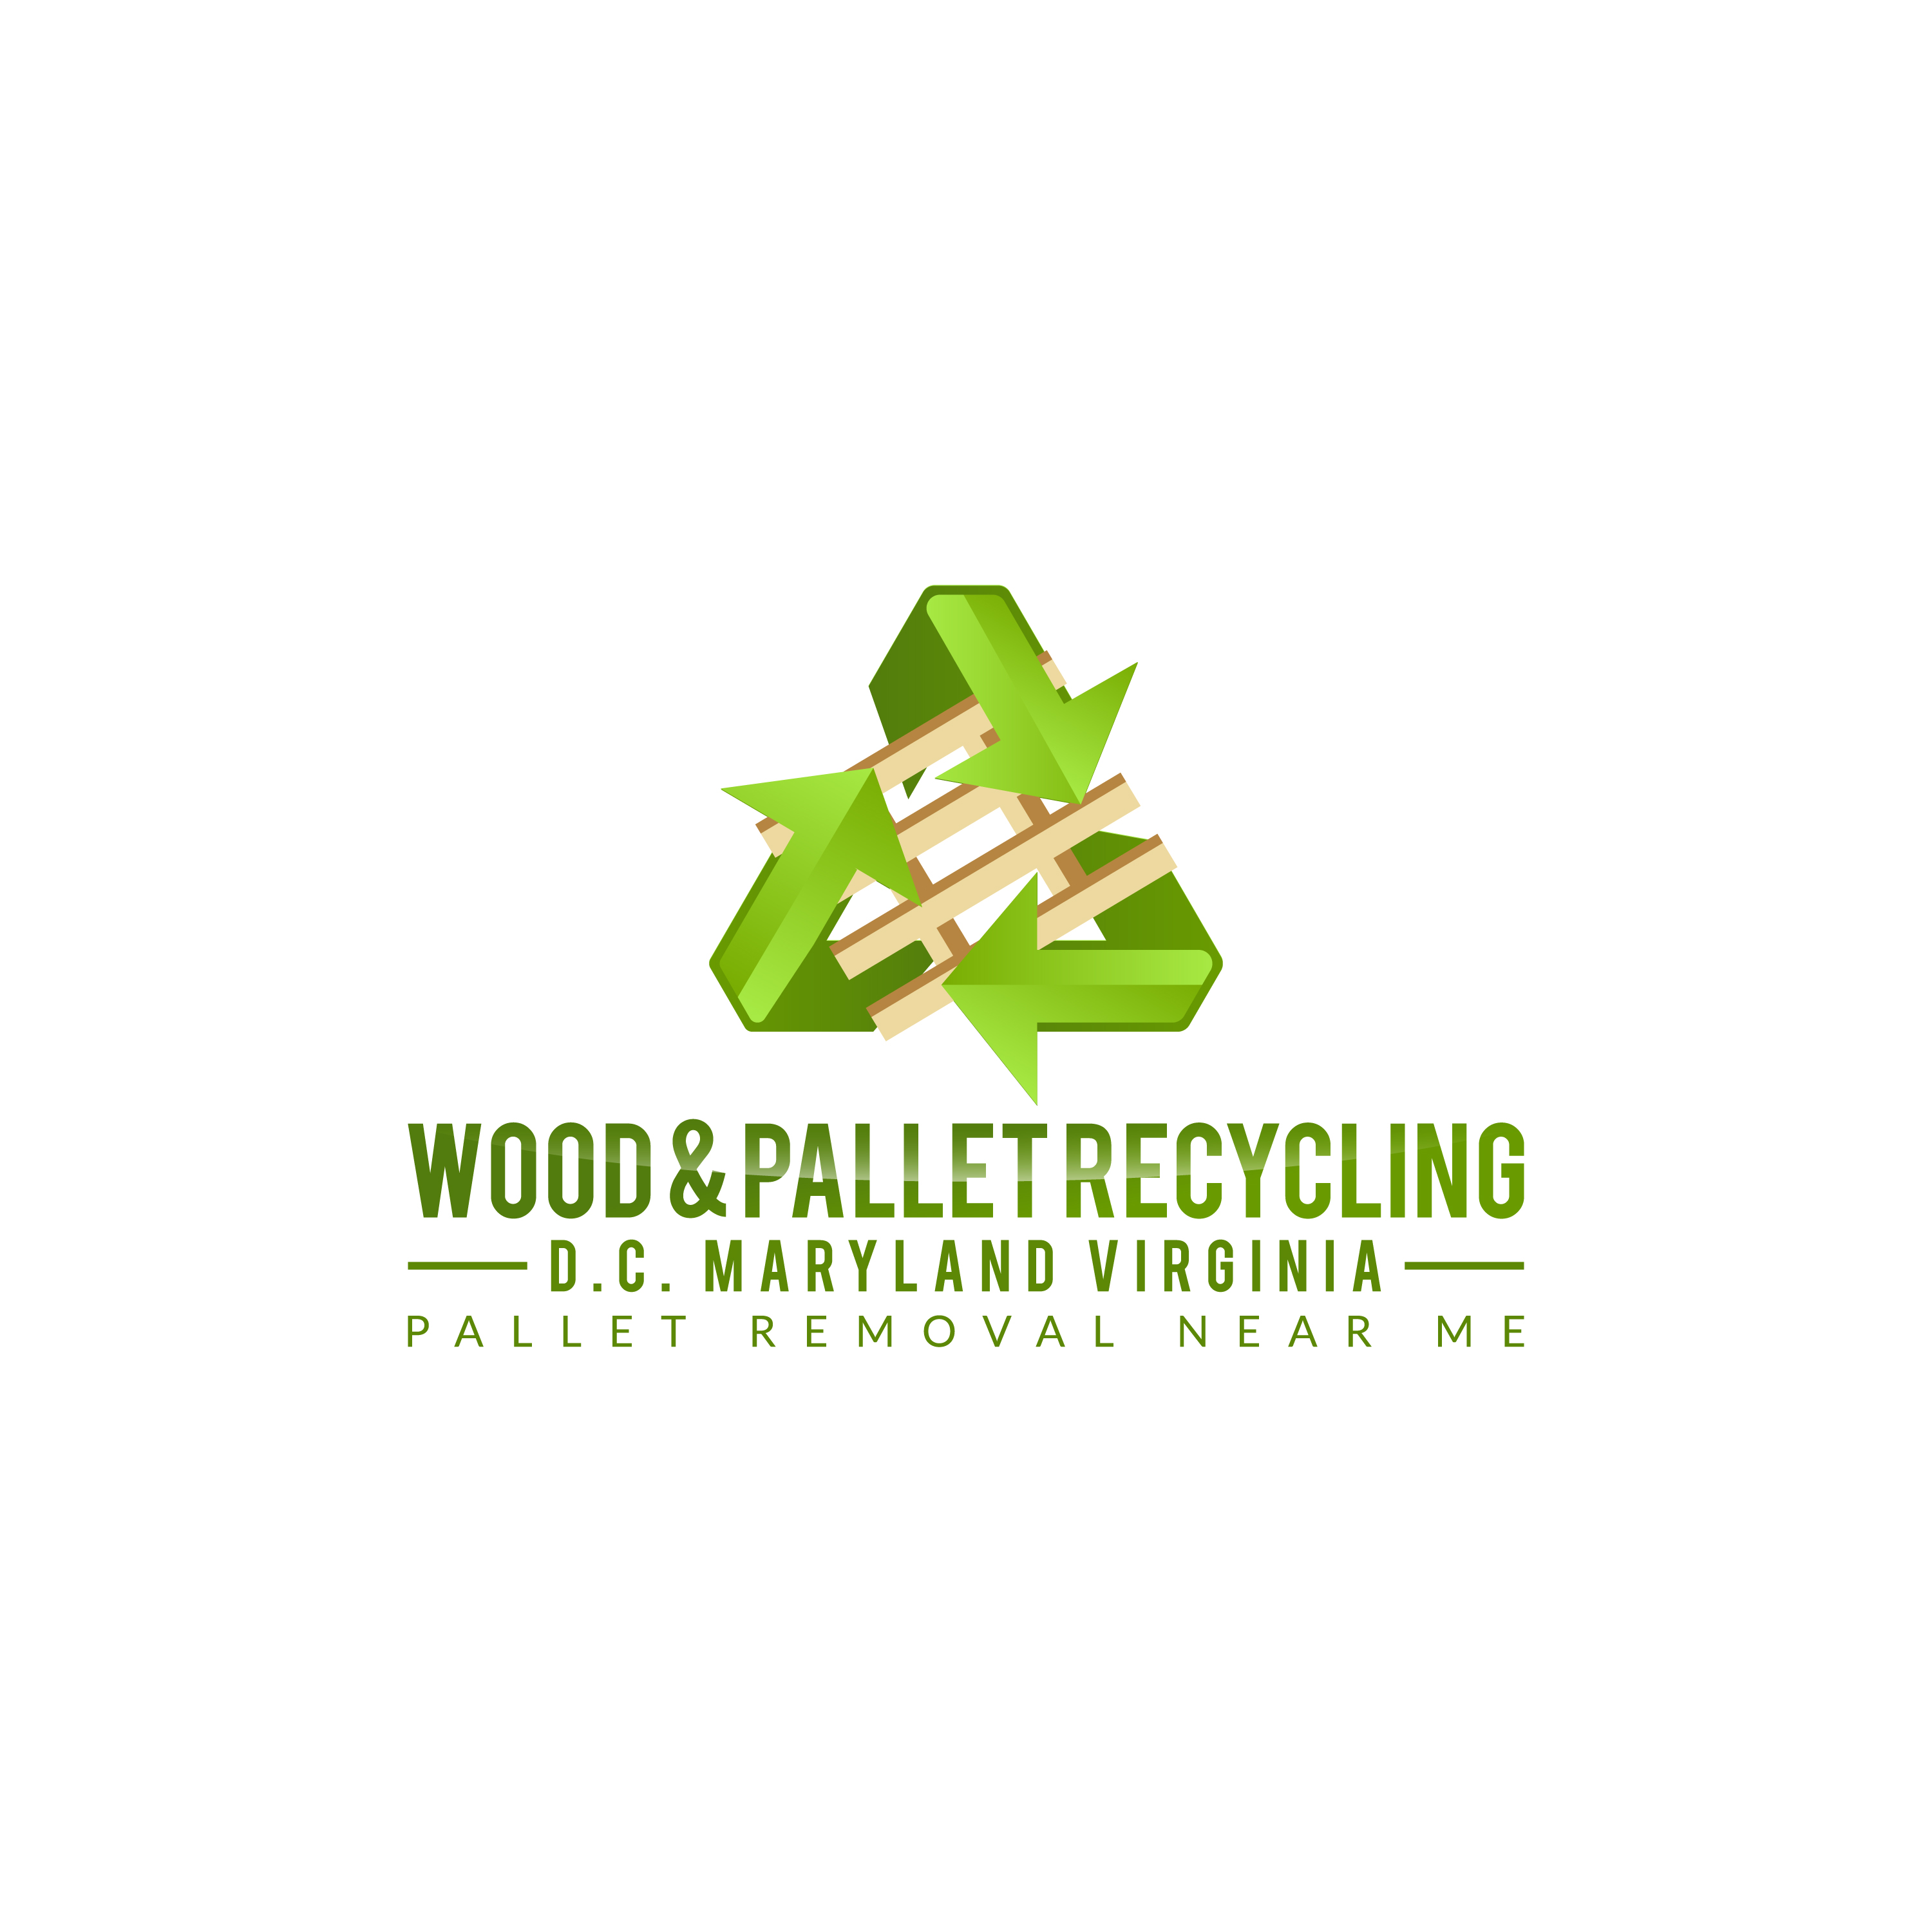 Pallet Recycling Pallet Removal DC Maryland Virginia